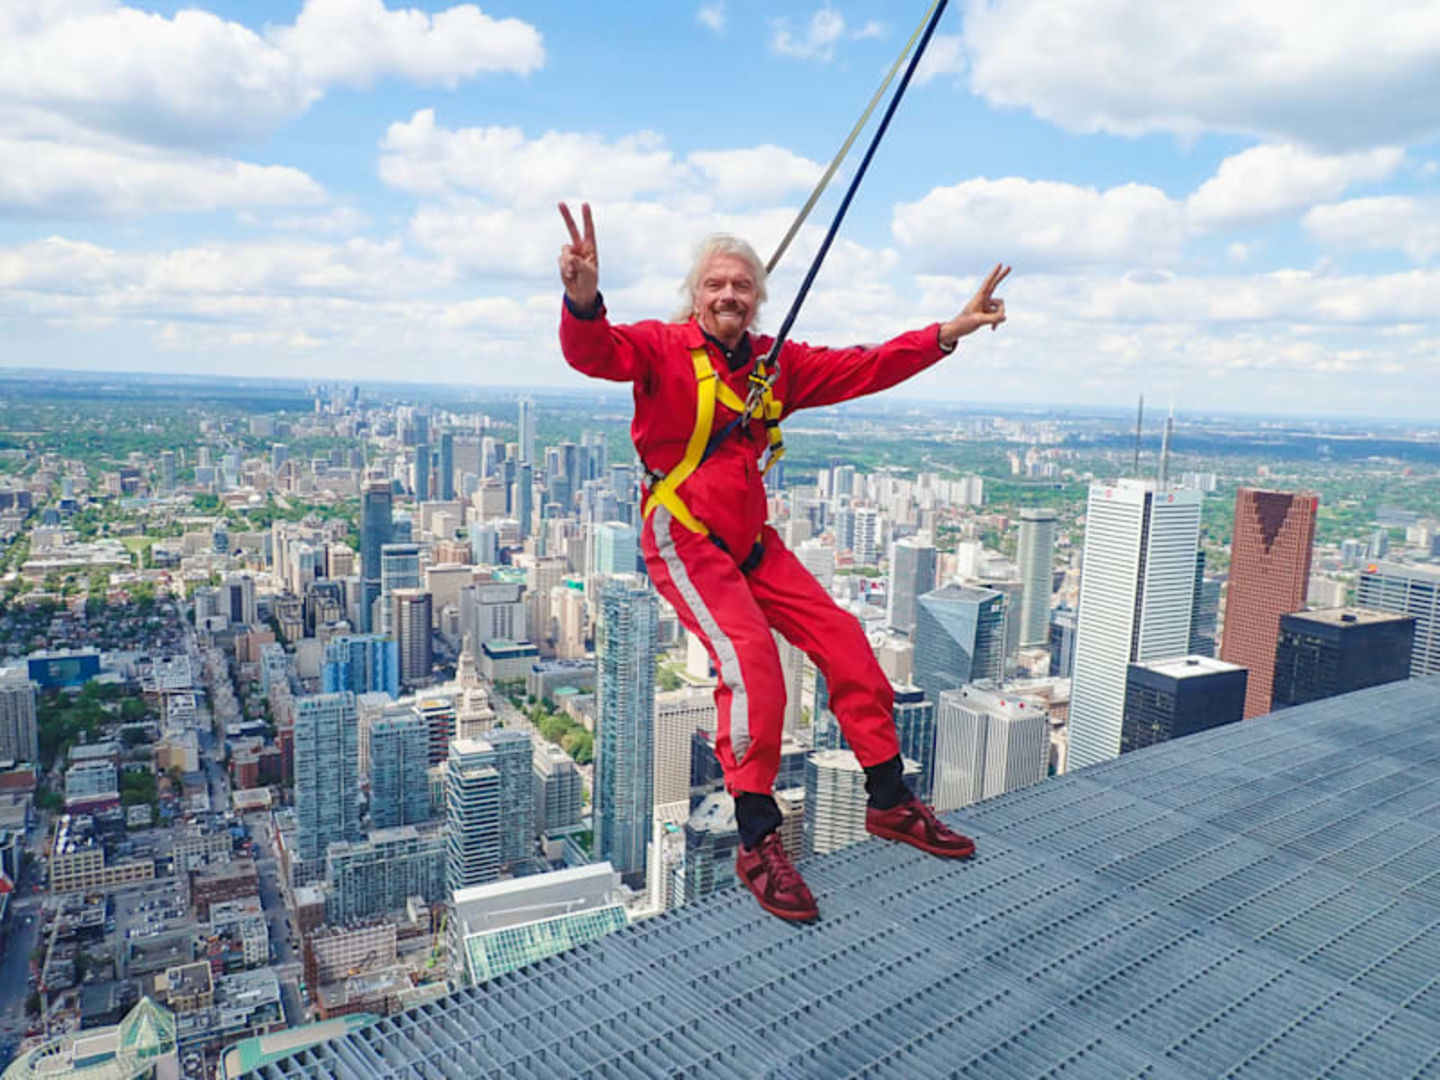 Richard Branson in red jumpsuit about to abseil down the Canada CN Tower